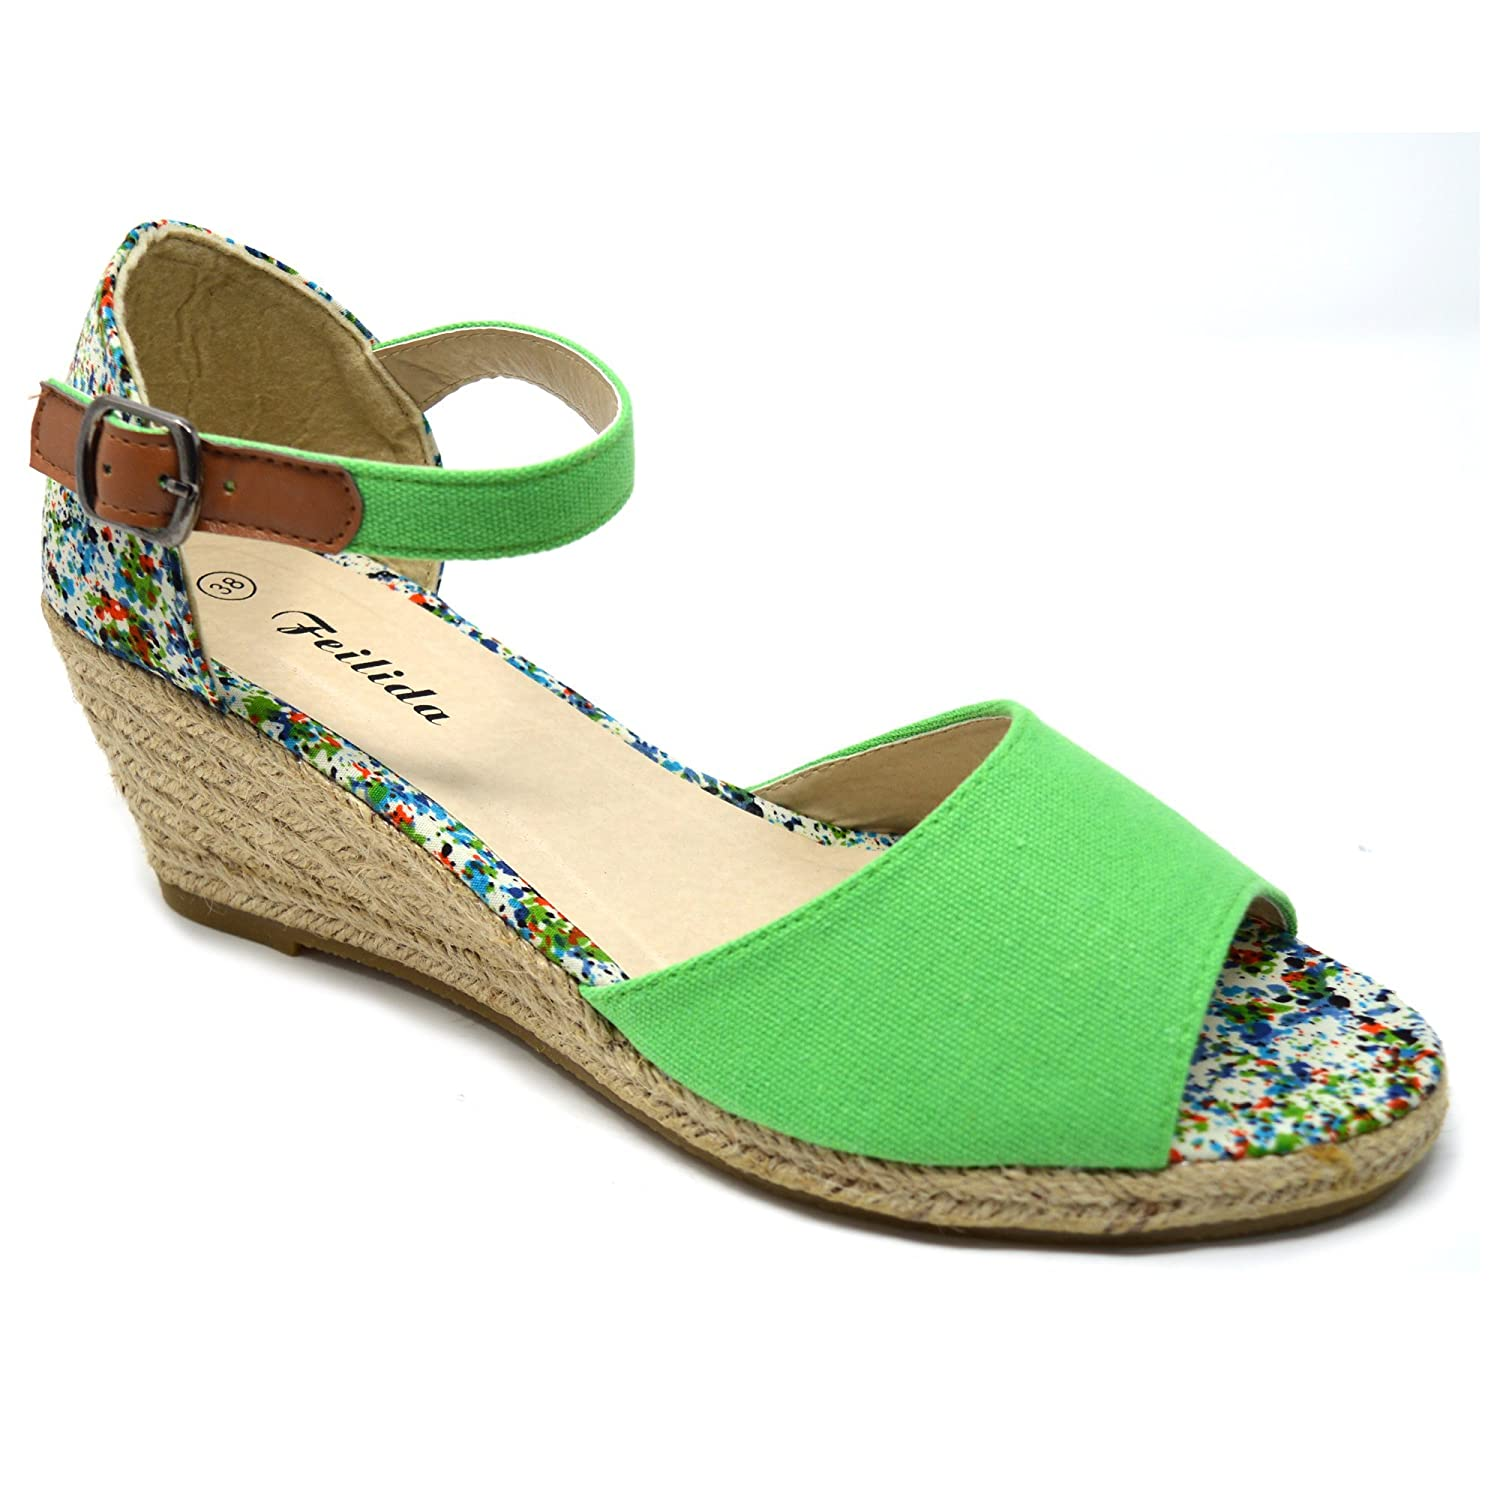 Xelay , Sandales Sandales pour Green Femme Xelay Green 63d475f - shopssong.space